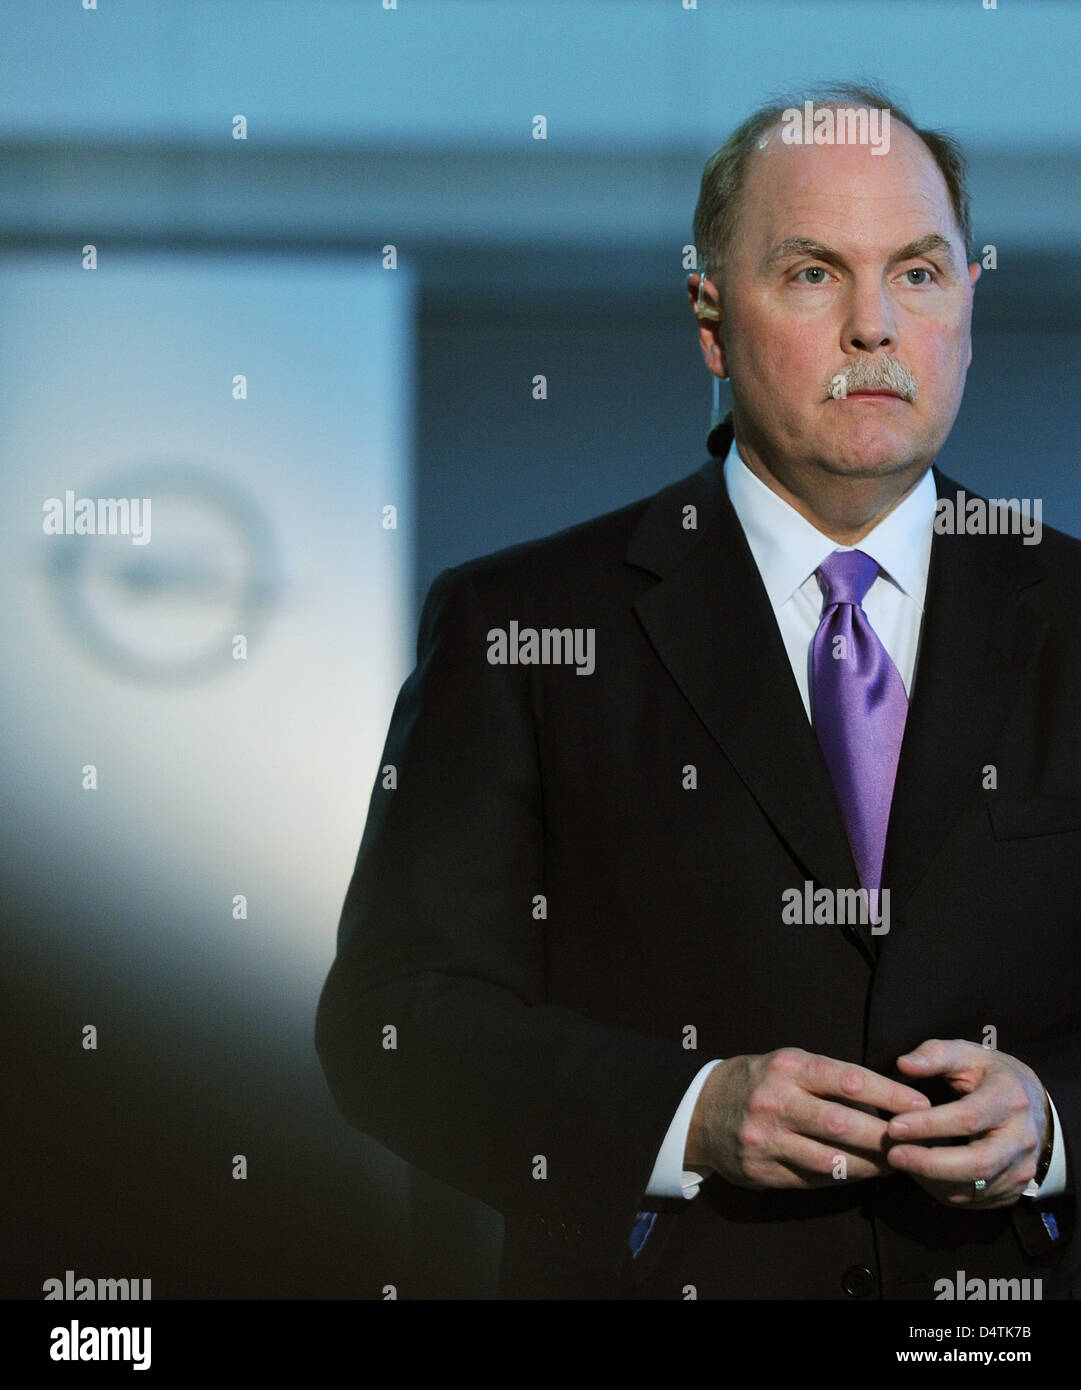 Chairman of General Motors (GM) Fritz Henderson gives an interview at the Opel factory in Ruesselsheim, Germany, - Stock Image